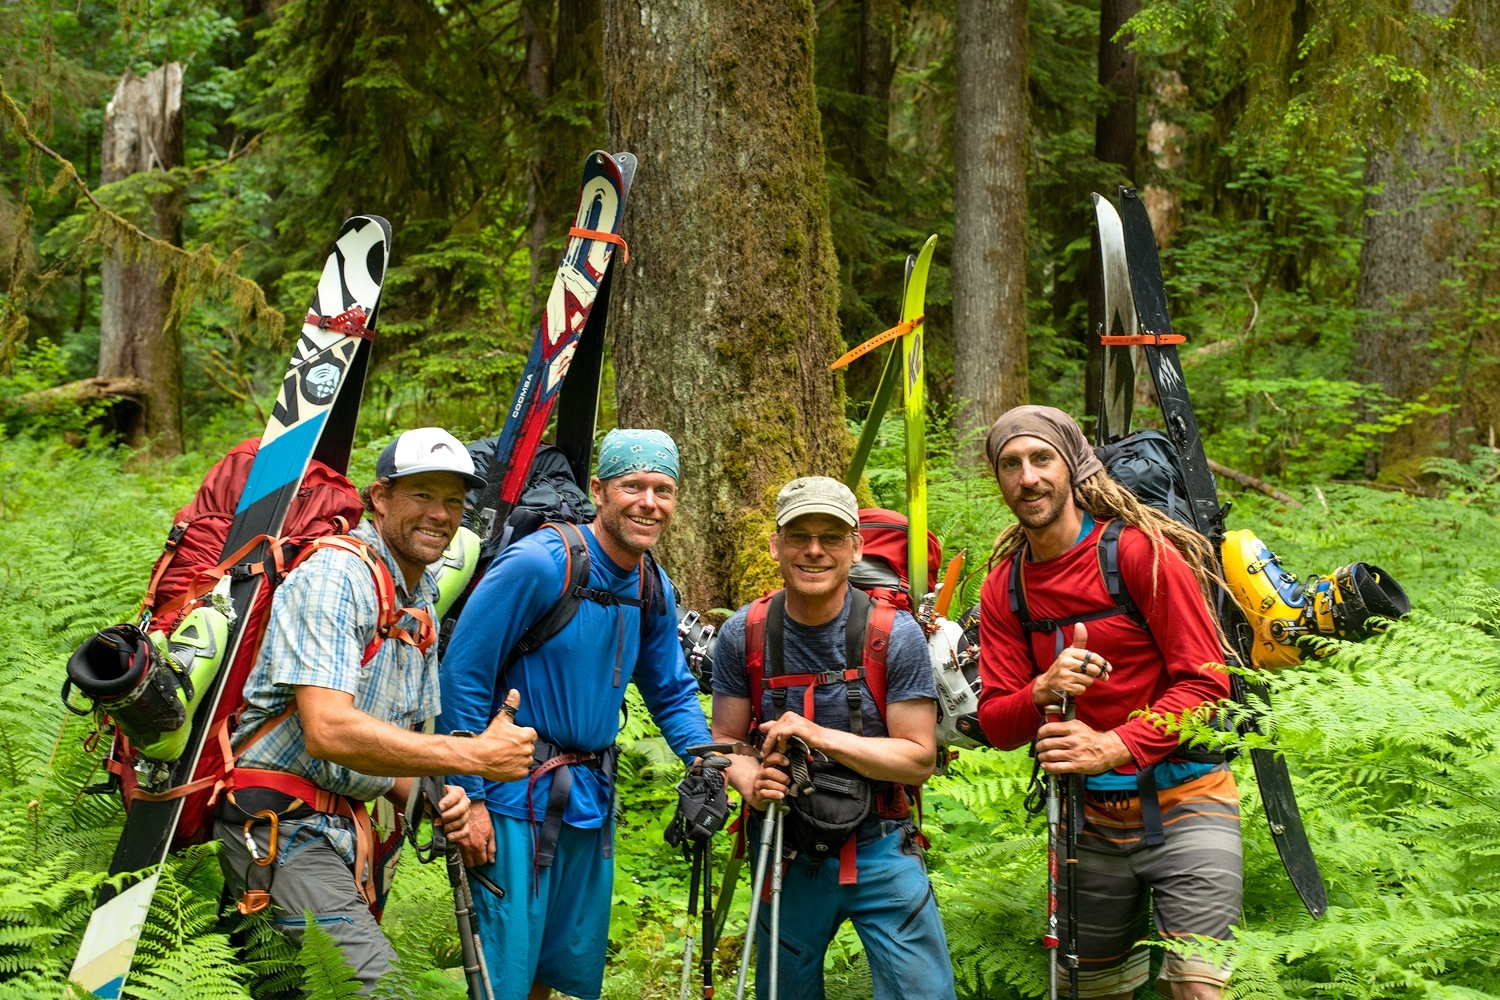 Four backcountry skiers on a mission to ski glaciers in Washington's Olympic Peninsula pose for a photo in the rainforest